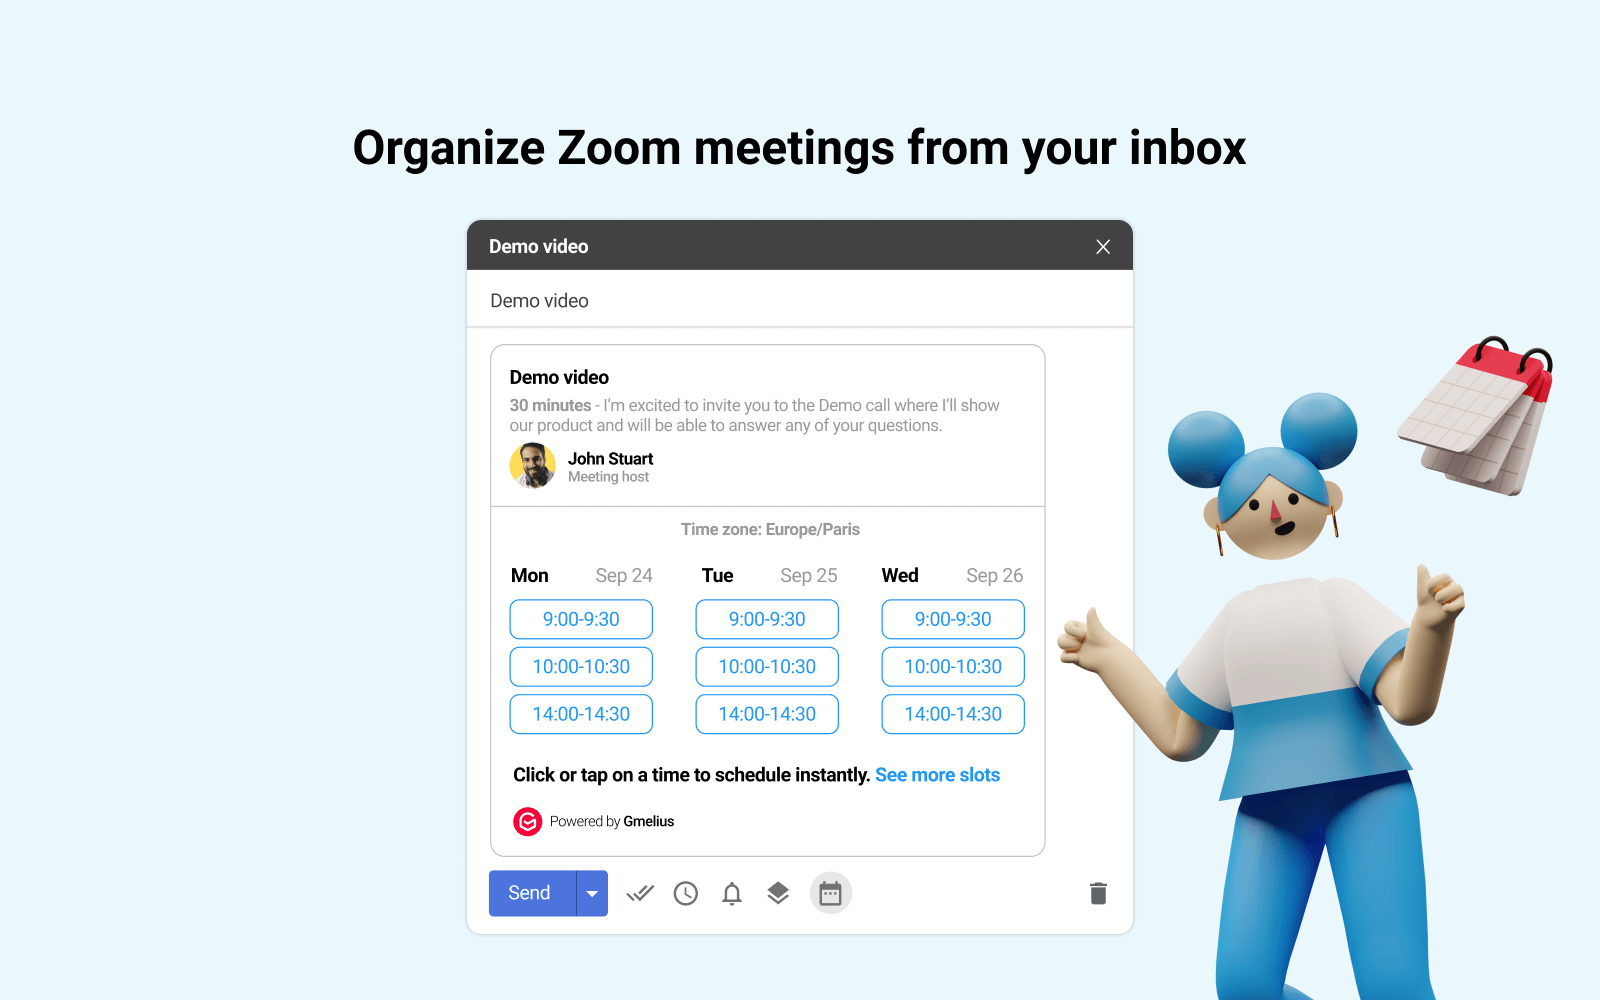 Schedule Zoom meetings inside Gmail